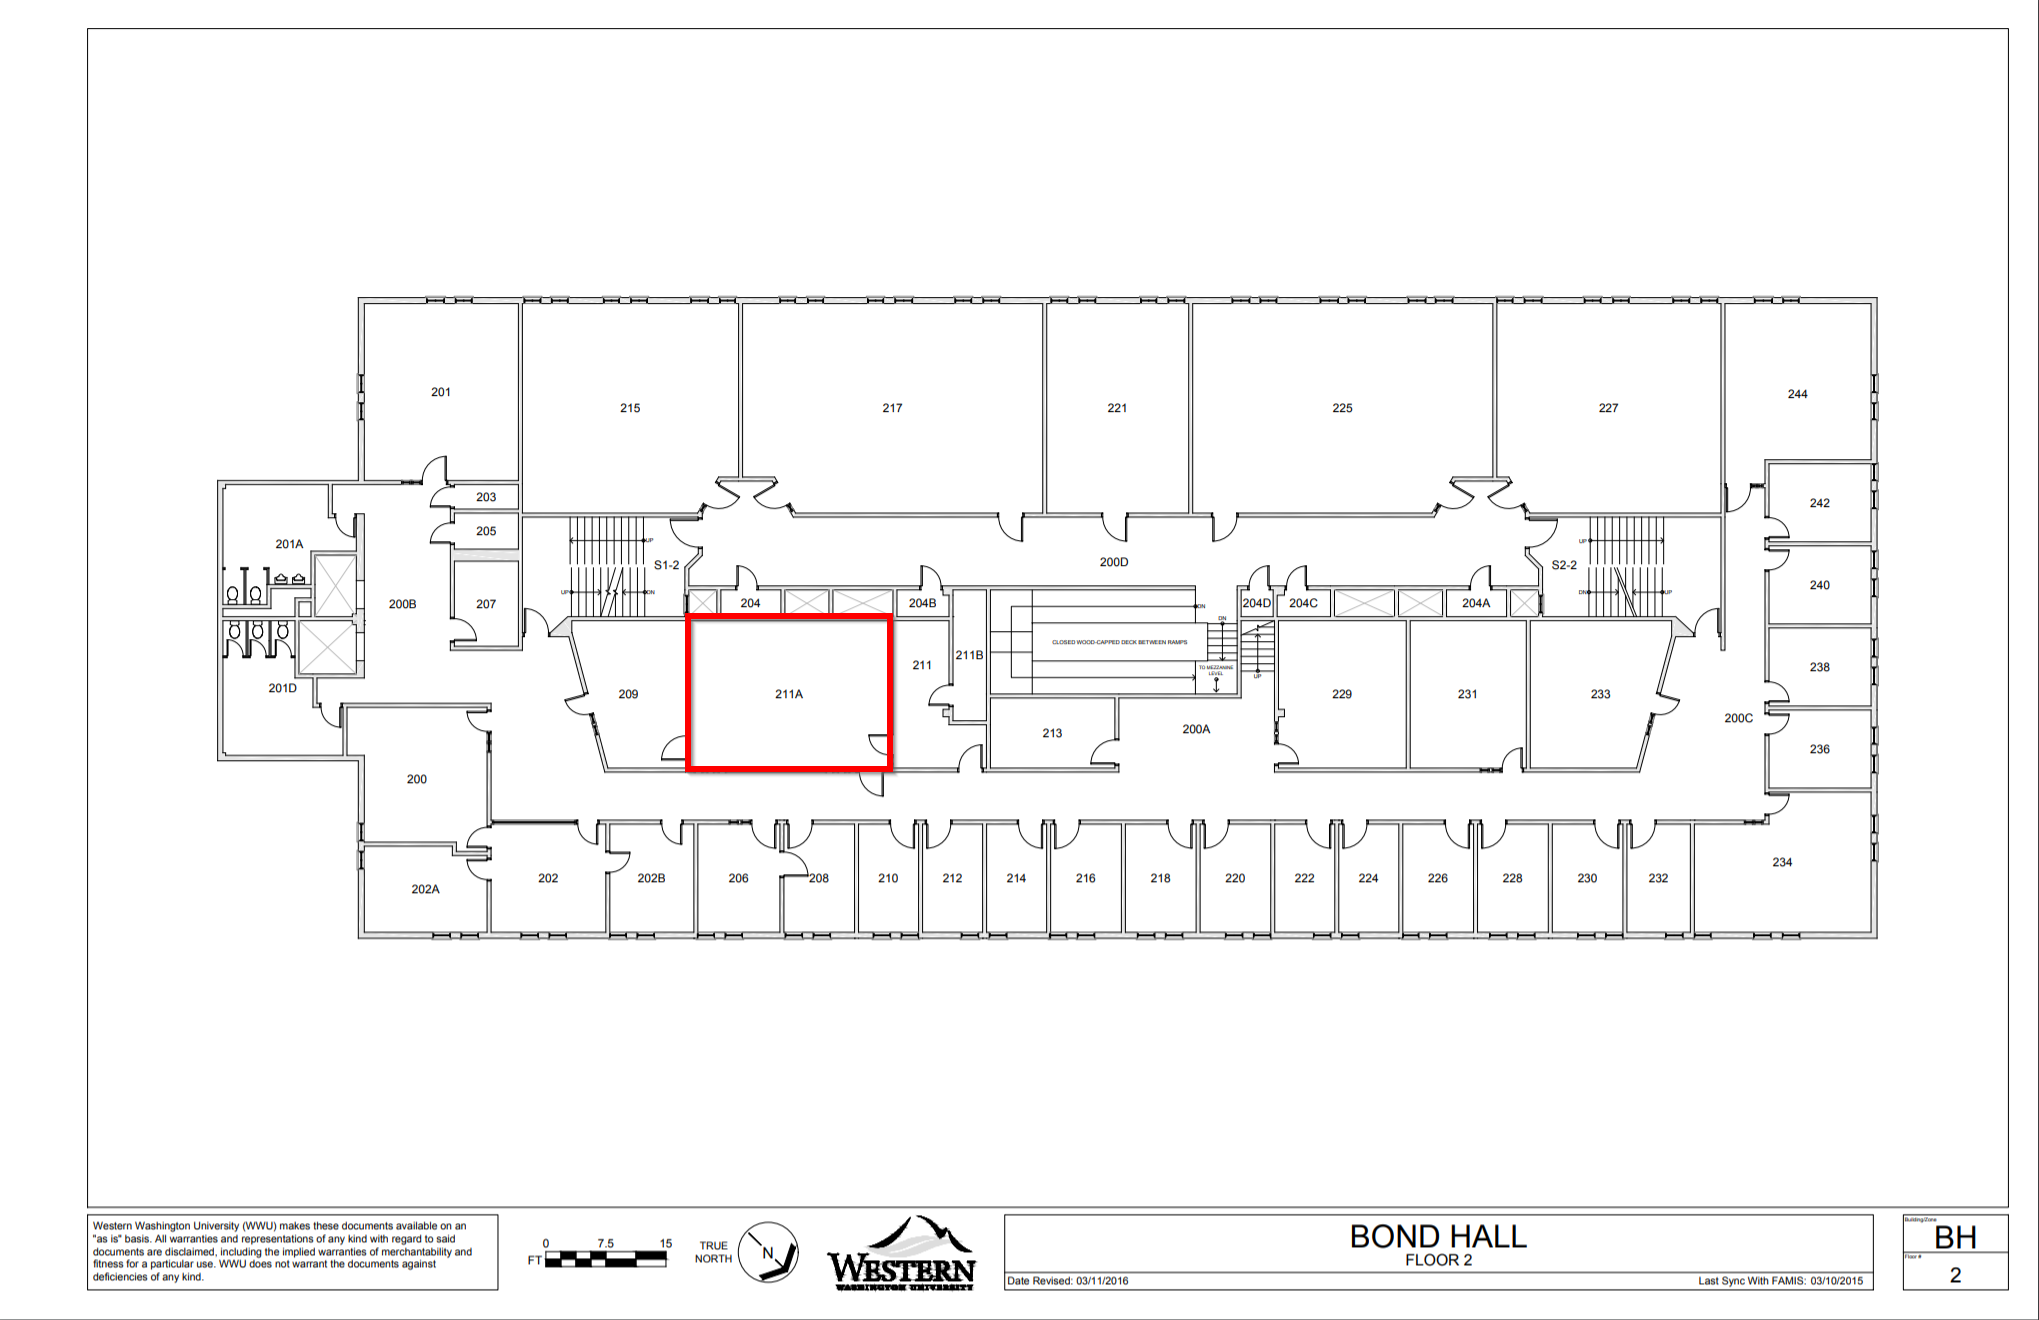 Bond Hall second floor map